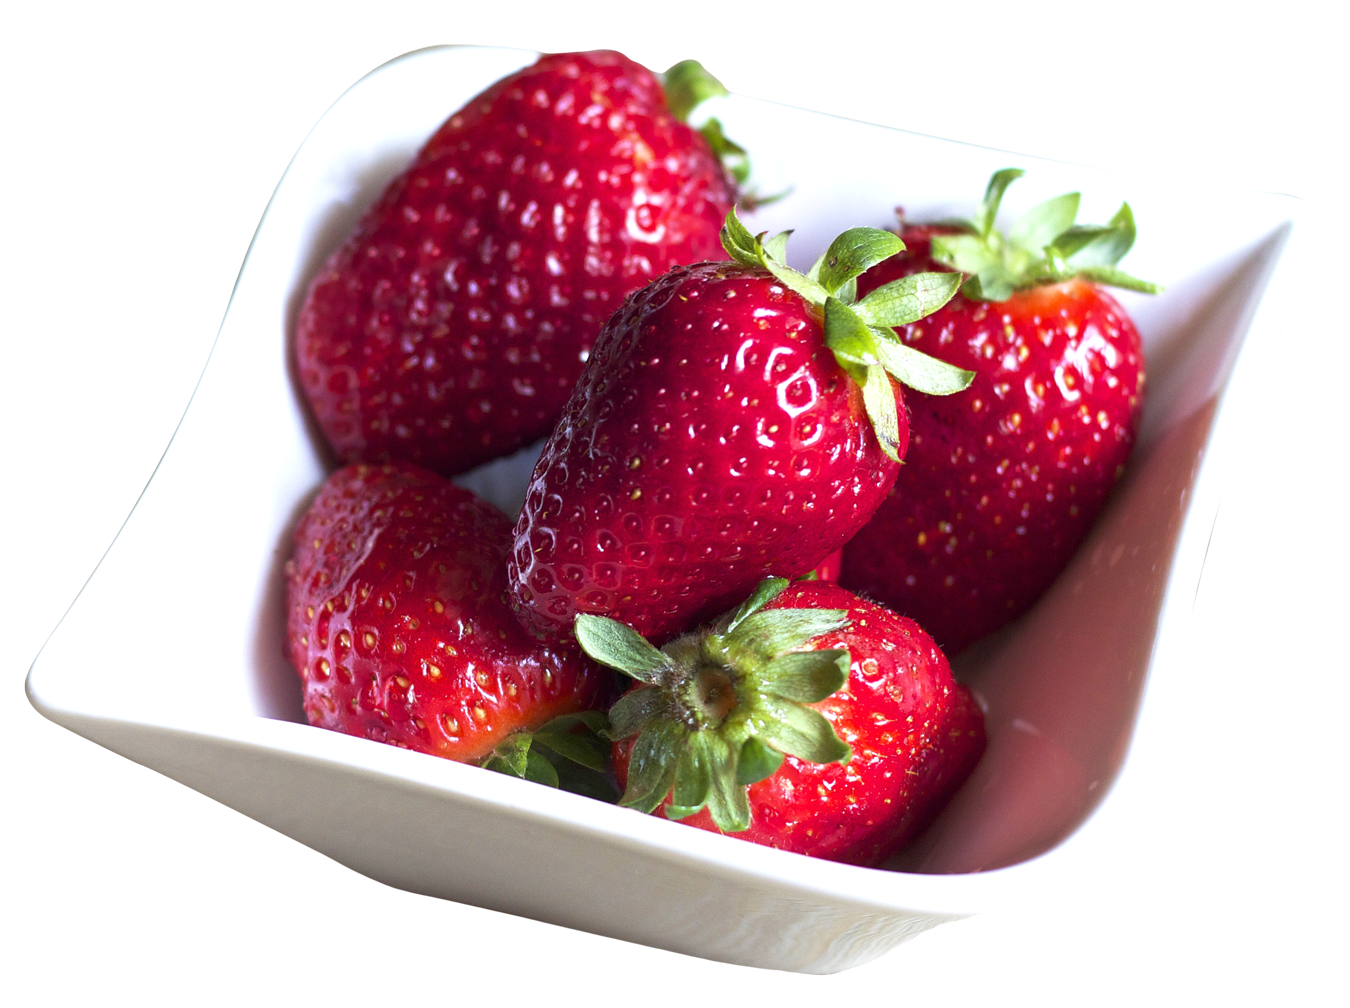 Strawberries clipart strawberry slice. Bowl filled with fresh